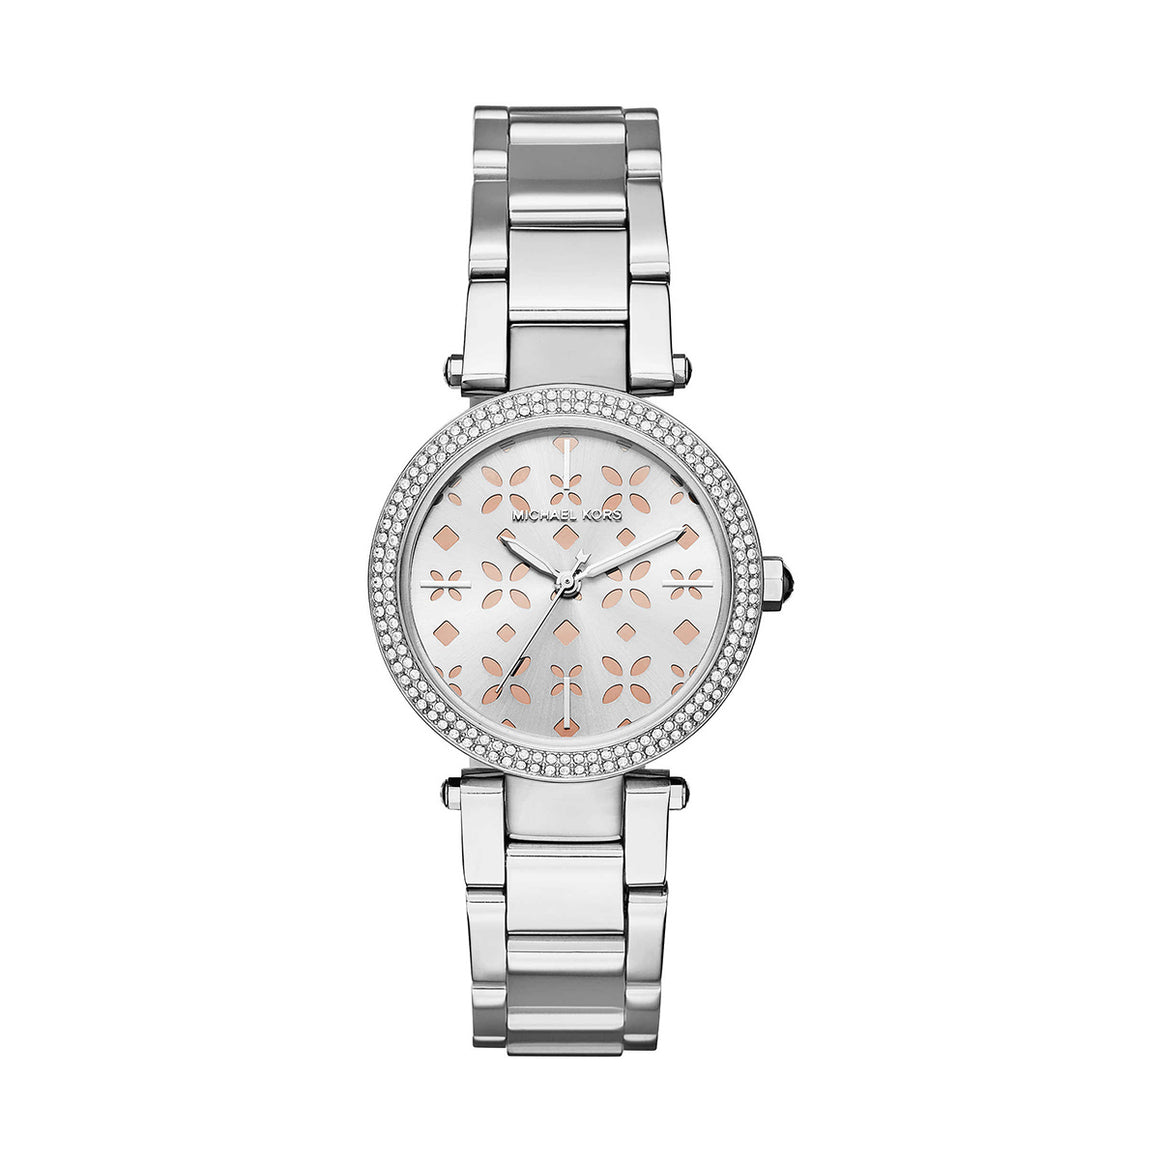 Michael Kors MK6483 Ladies Stainless Steel Watch